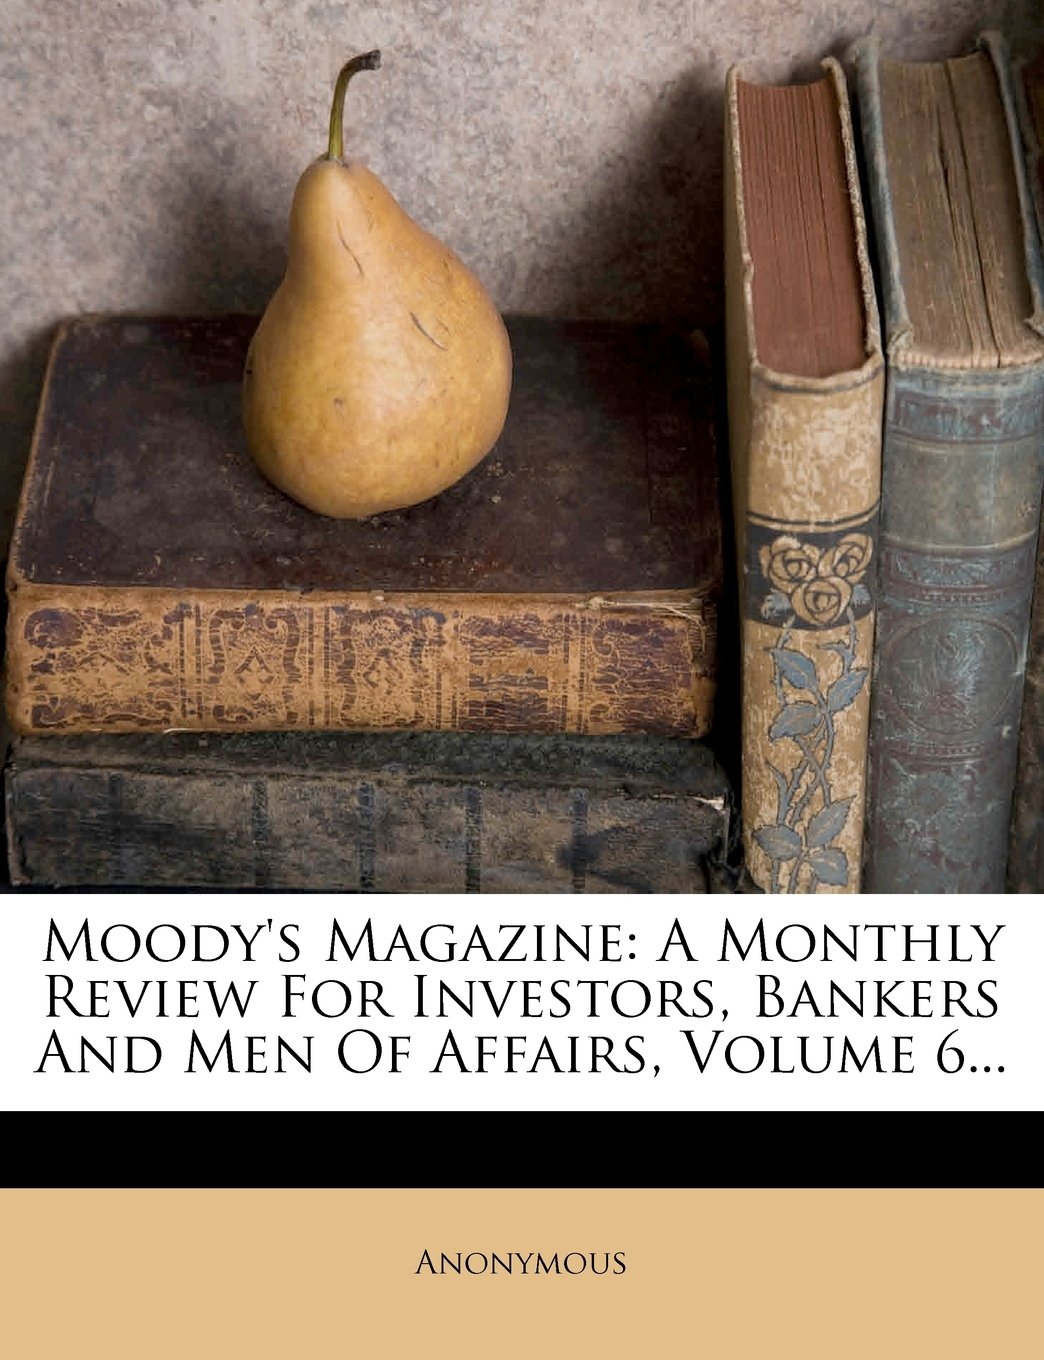 Moody's Magazine: A Monthly Review for Investors, Bankers and Men of Affairs, Volume 6... pdf